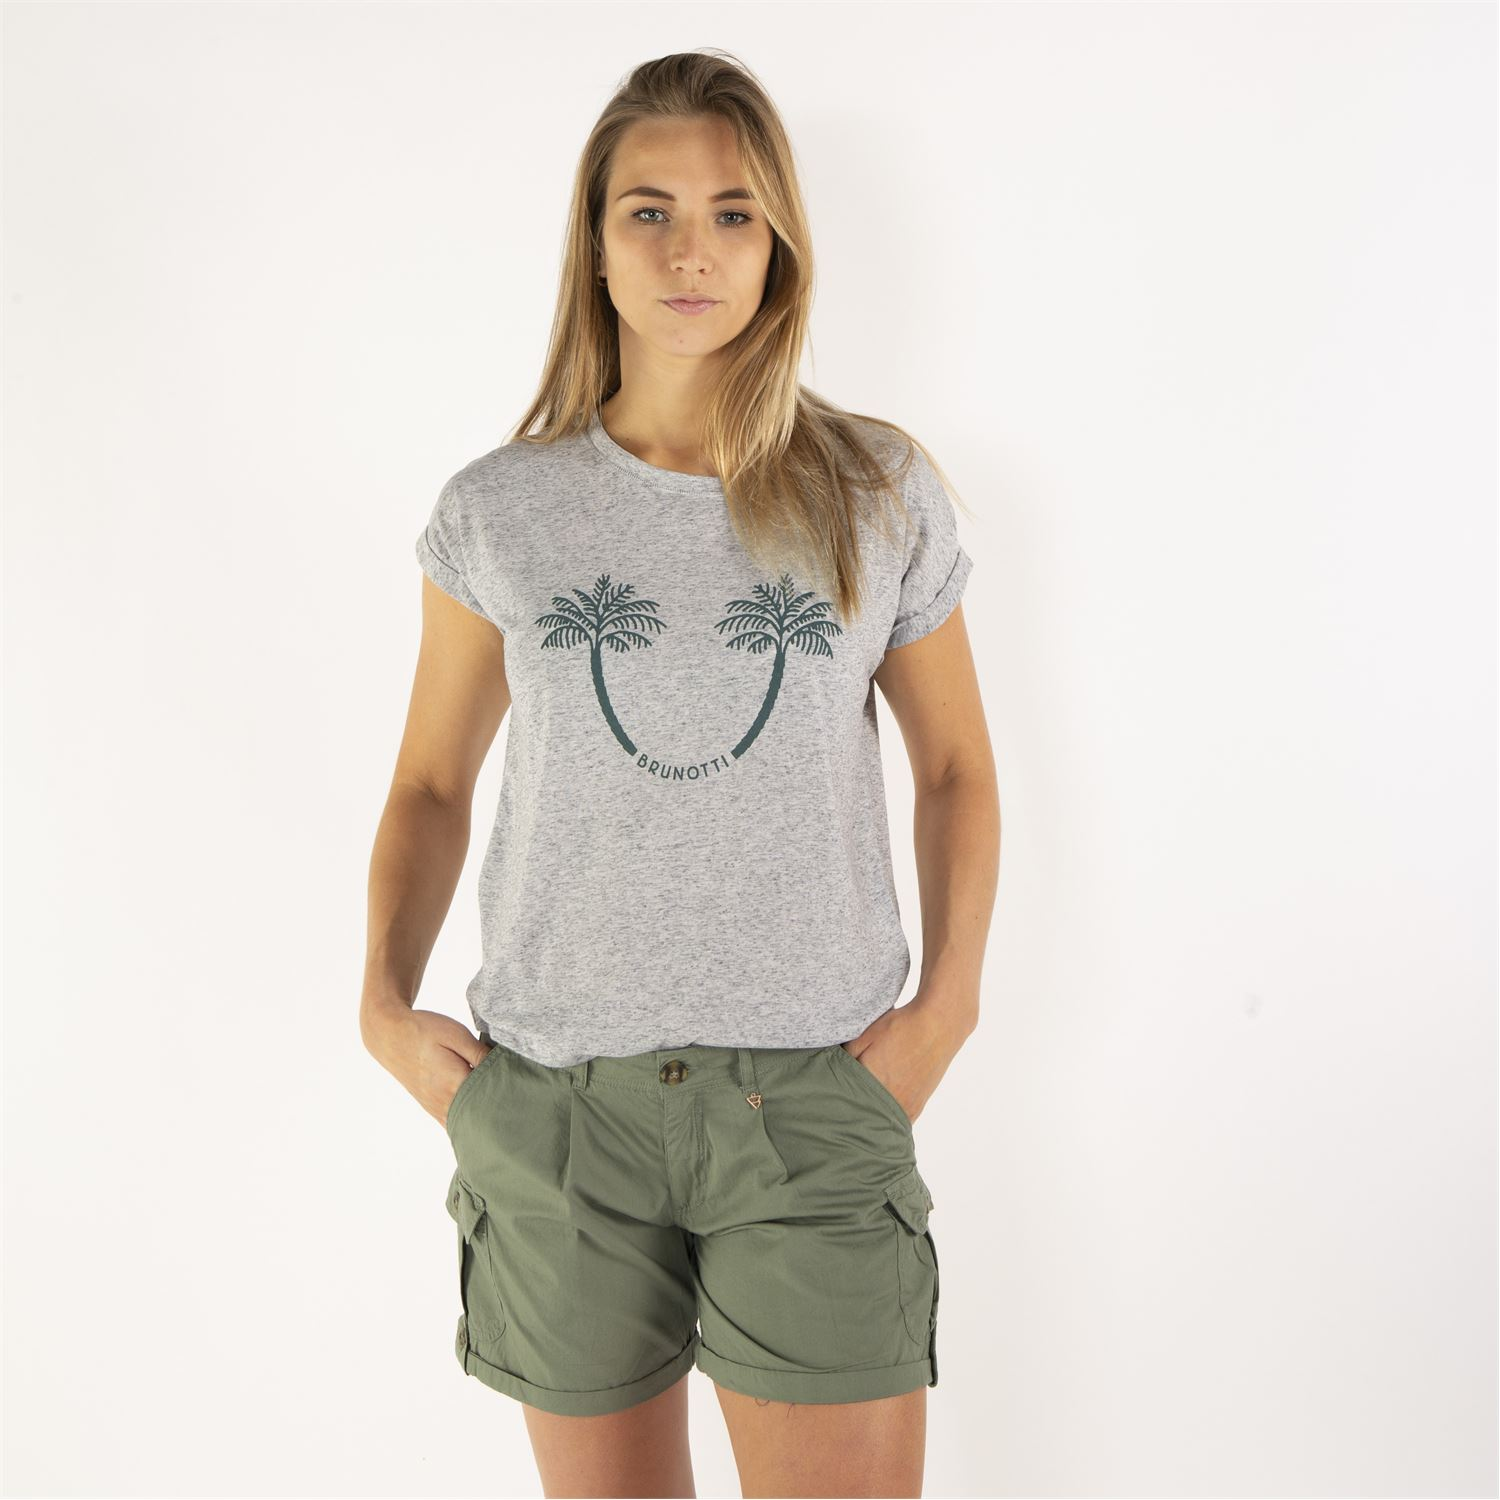 38bae6982e6ba Brunotti Acacia (grey) - women t-shirts & tops - Brunotti online shop. Our  model is 176 cm tall and wears size M. Sale. Thumb 2 Thumb 3 Thumb 8 Thumb  1 ...